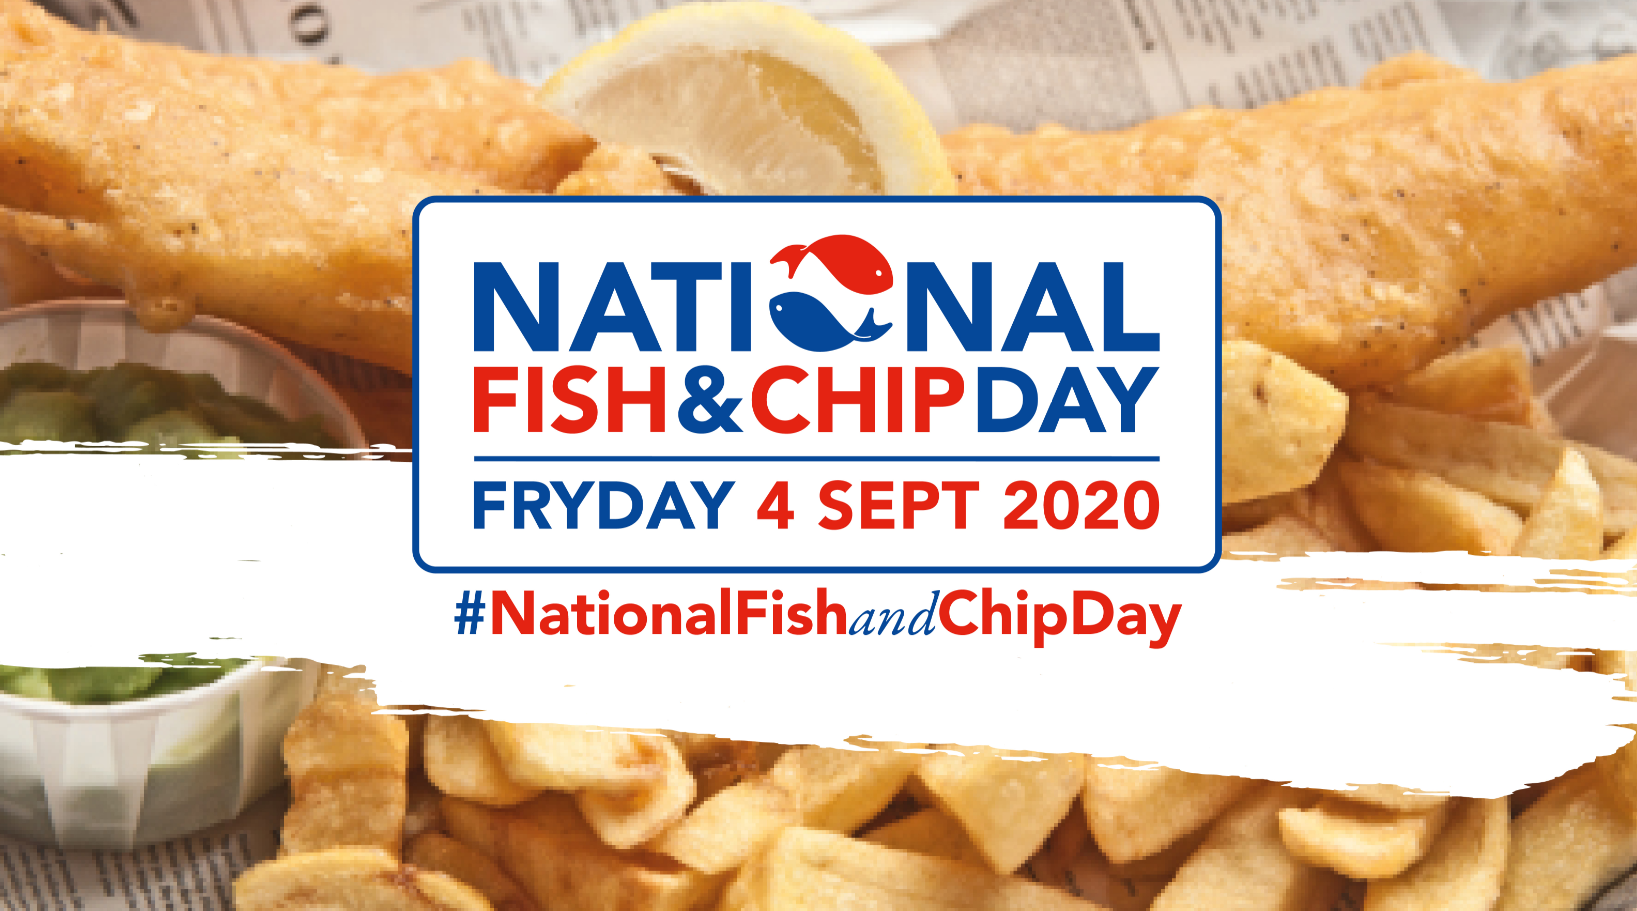 Counting down to National Fish & Chip Day